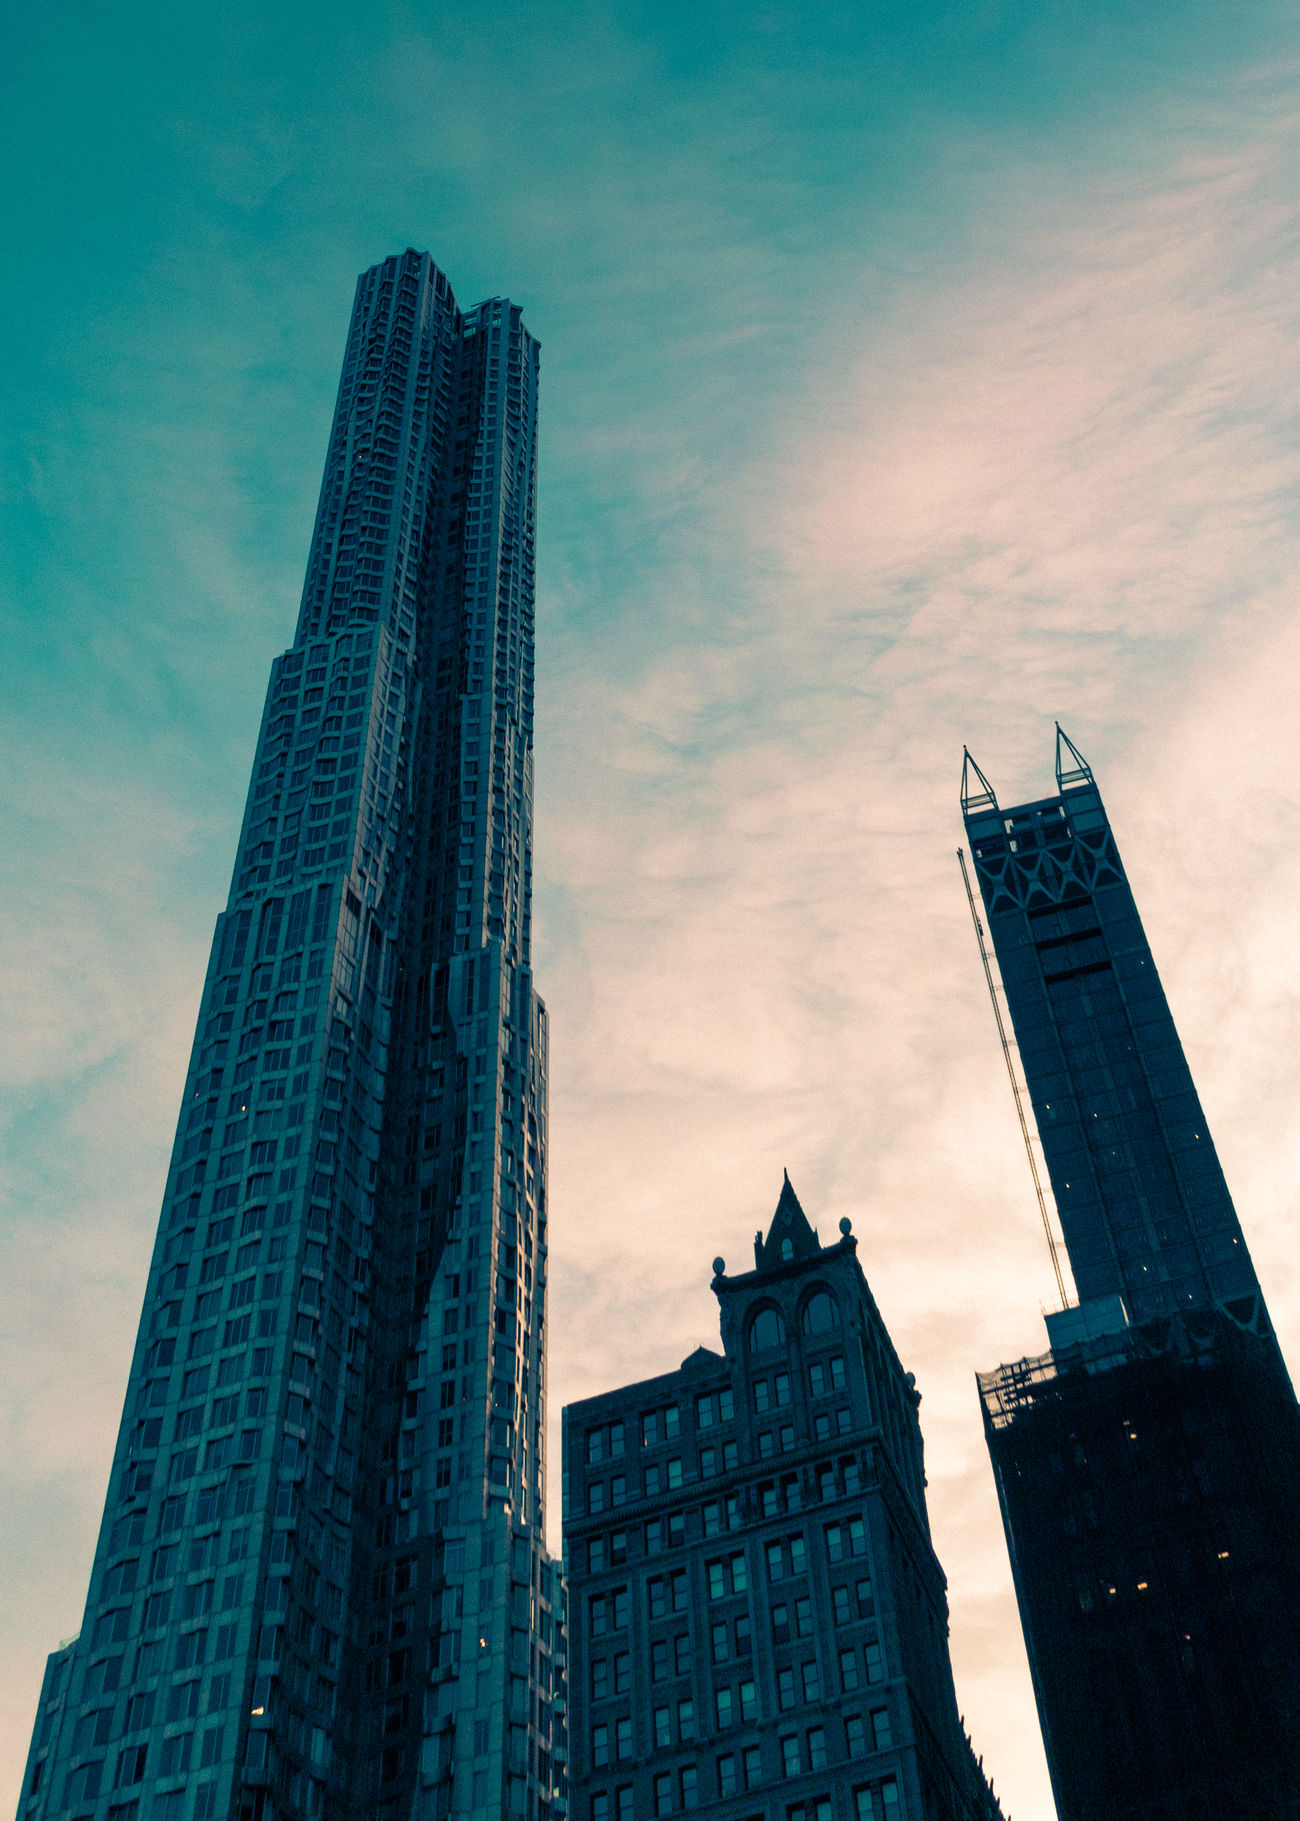 Tall Architecture Building Exterior Built Structure City Cityscape Day Low Angle View Modern No People Outdoors Sky Skyscraper Tall Tall - High The Architect - 2017 EyeEm Awards Tower Travel Destinations Urban Skyline